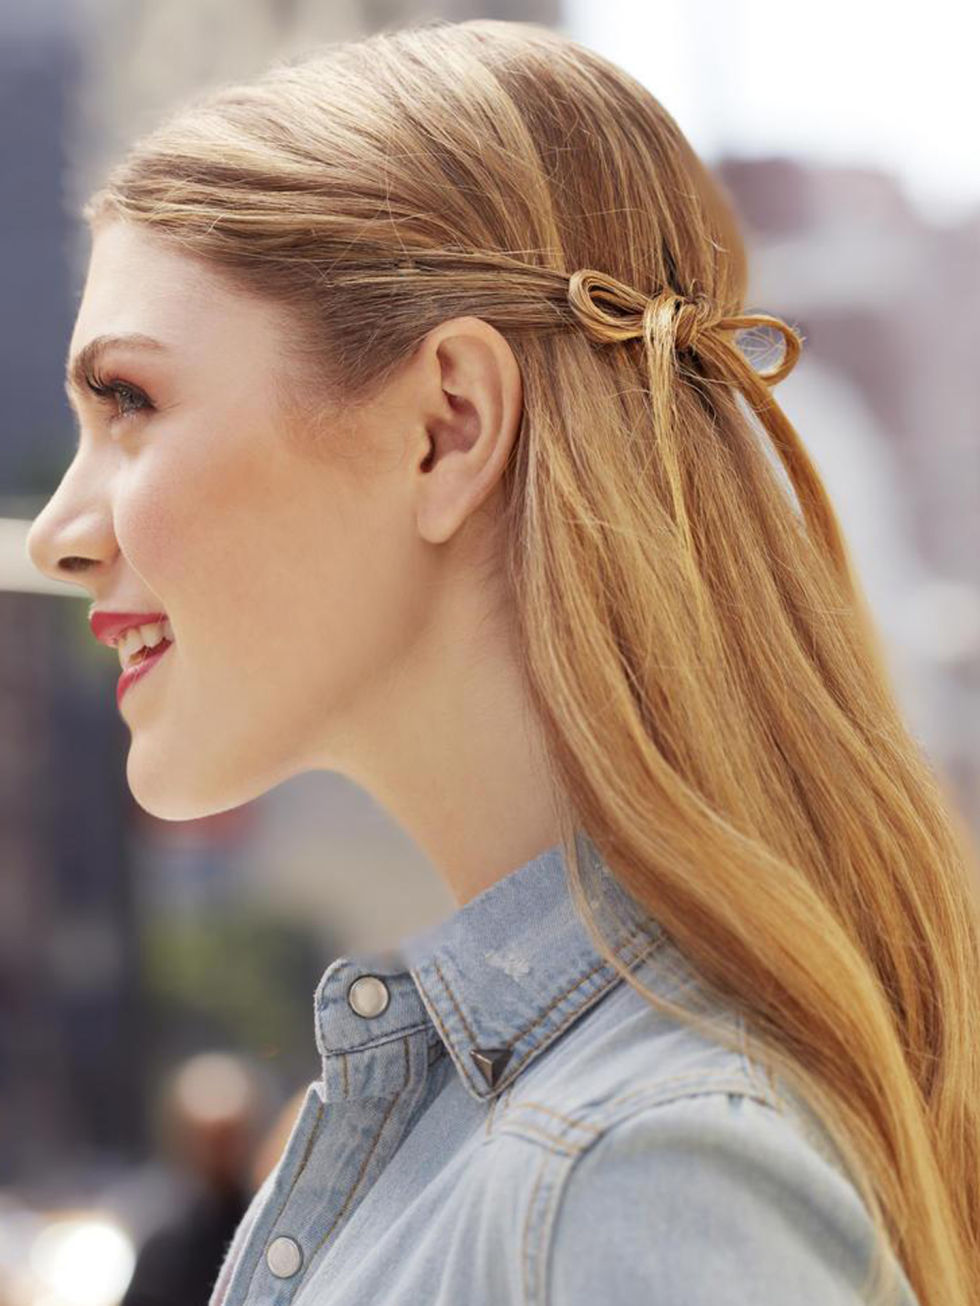 16 Epic New Year's Eve Hairstyle Ideas Hair Inspiration For NYE 2017